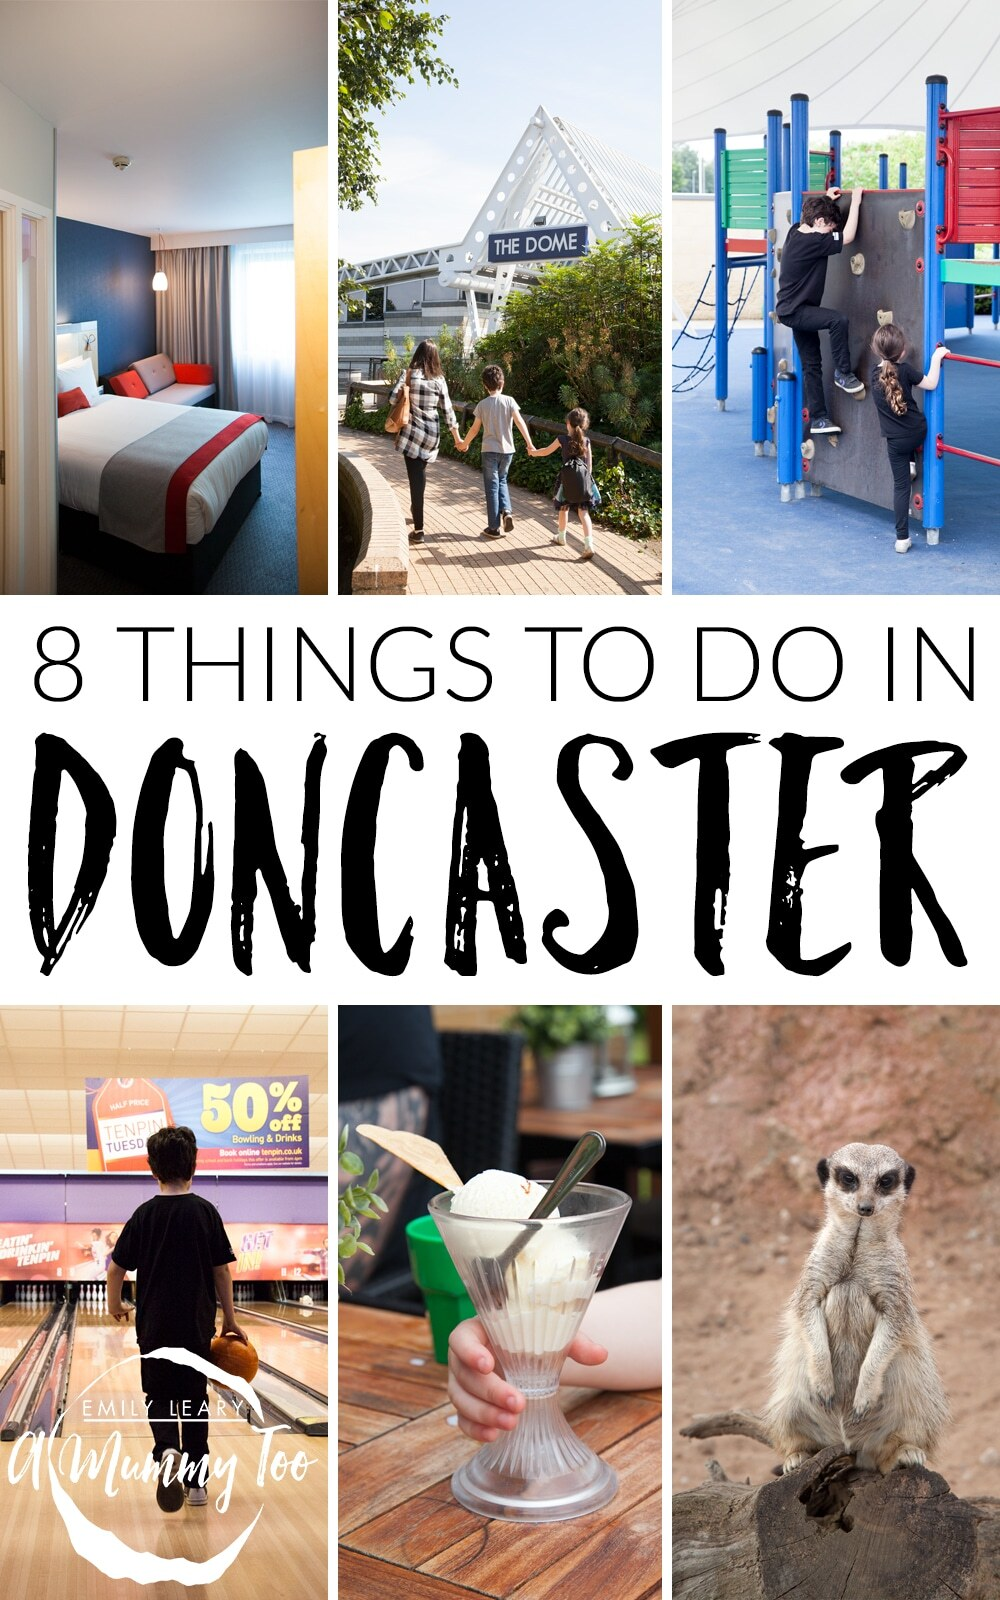 A family weekend exploring what Doncaster, Yorkshire has to offer